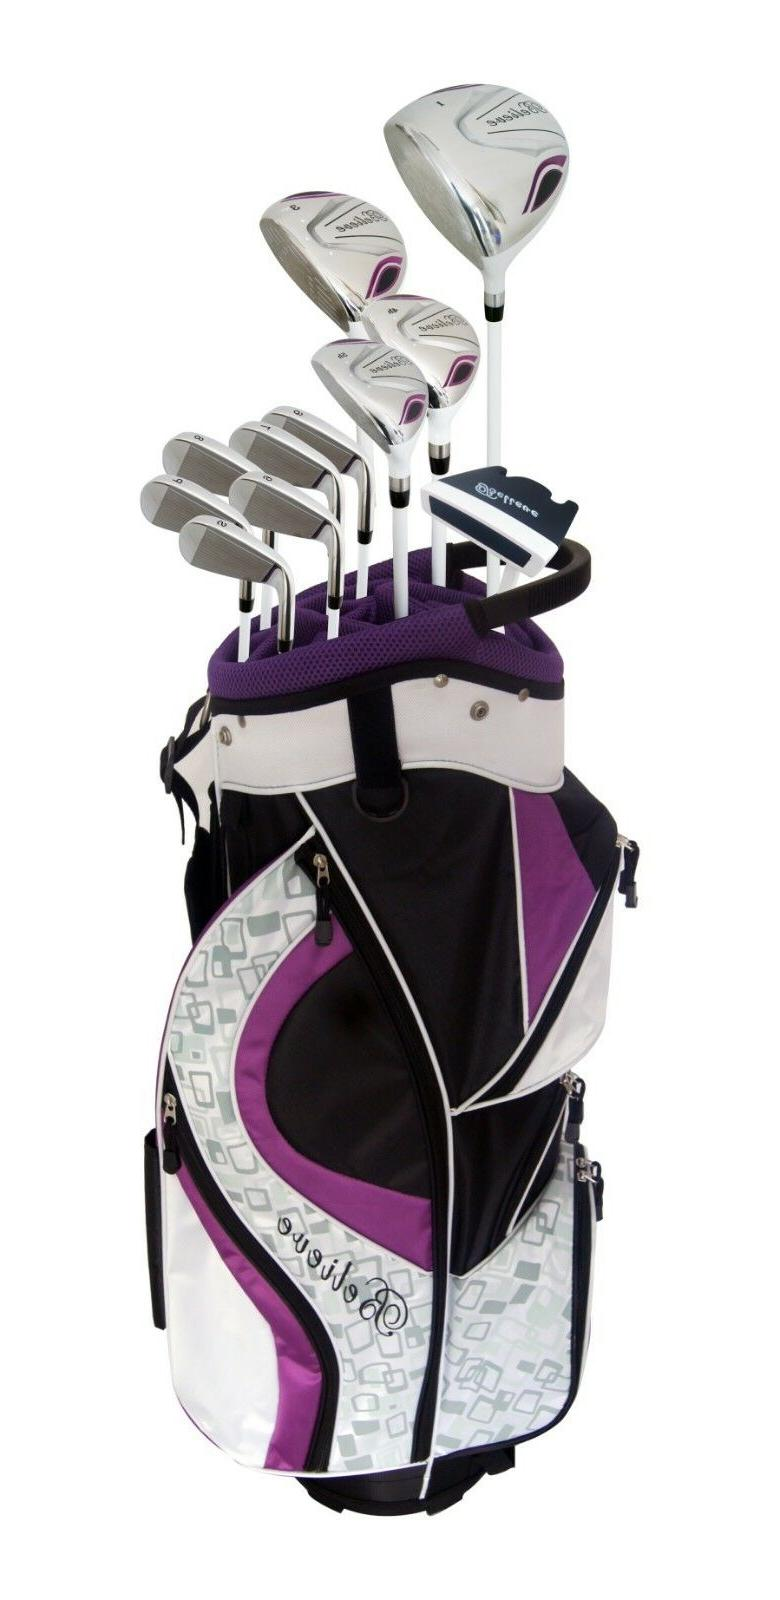 Founders Club Womens Golf Club Set with Head Covers